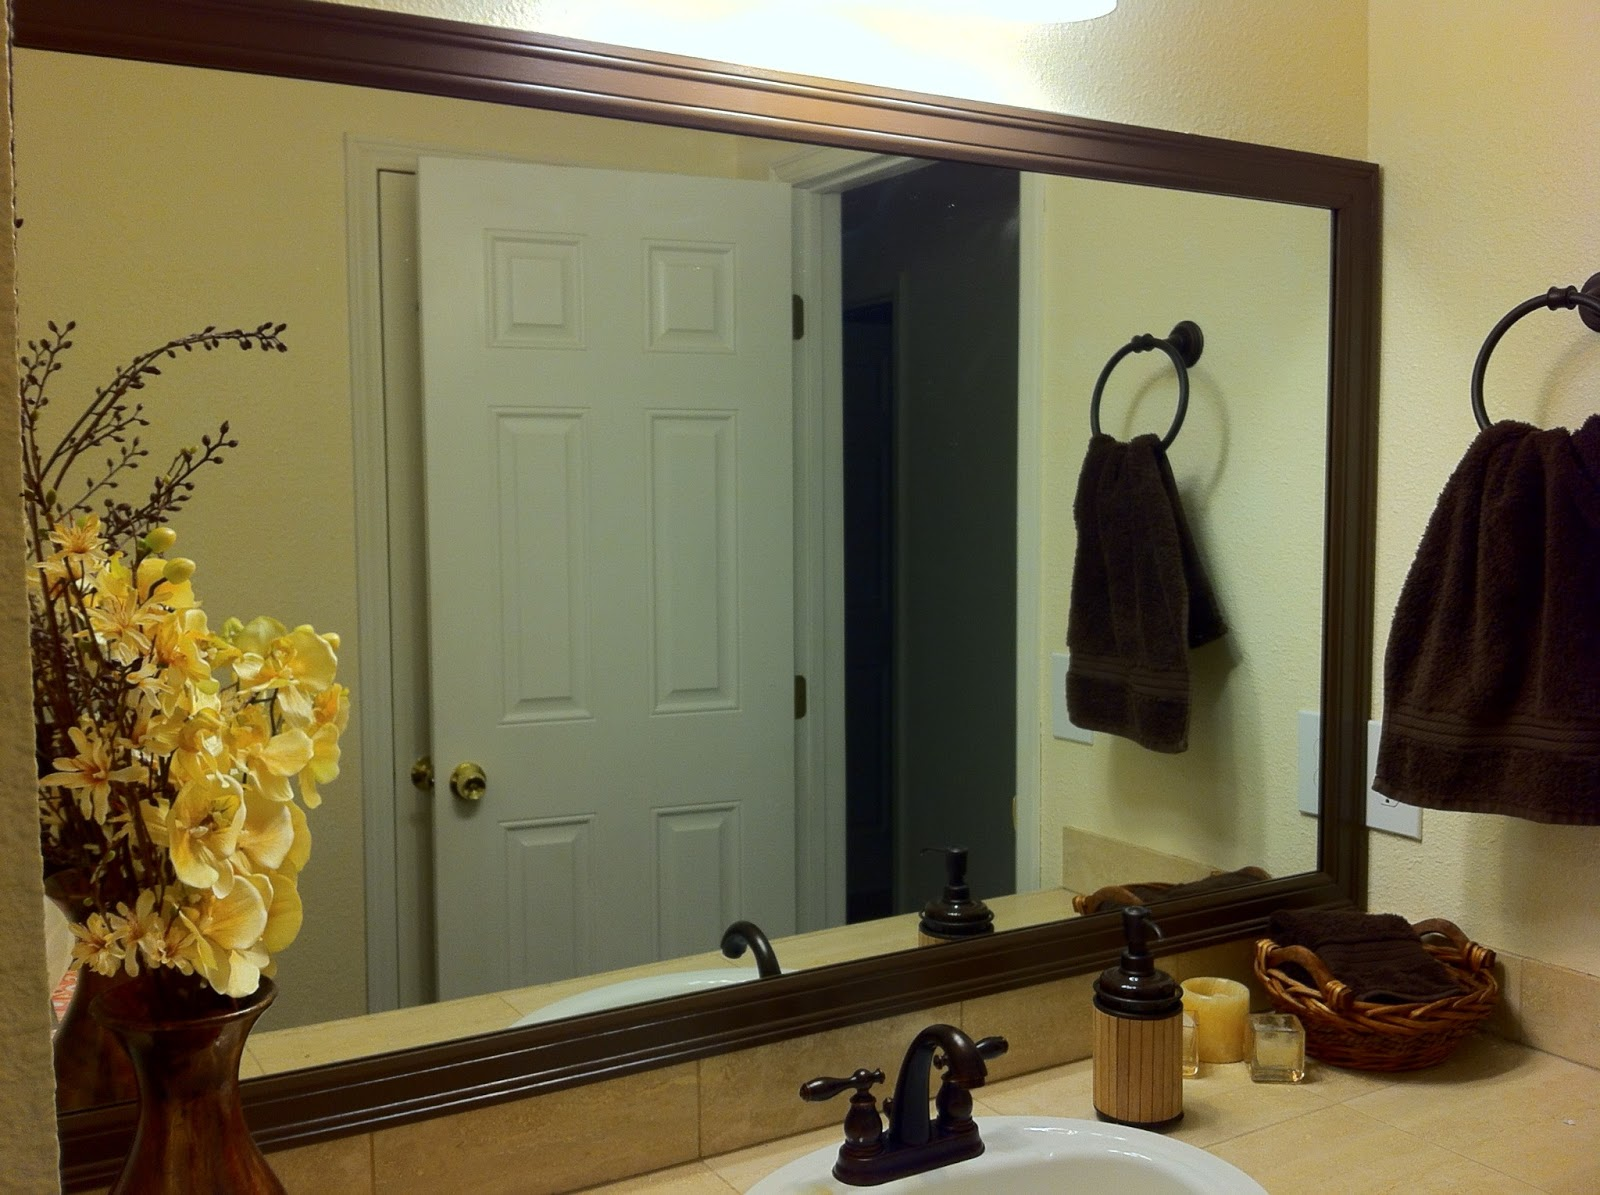 Miscellanea Etcetera DIY Bathroom Mirror Frame for less